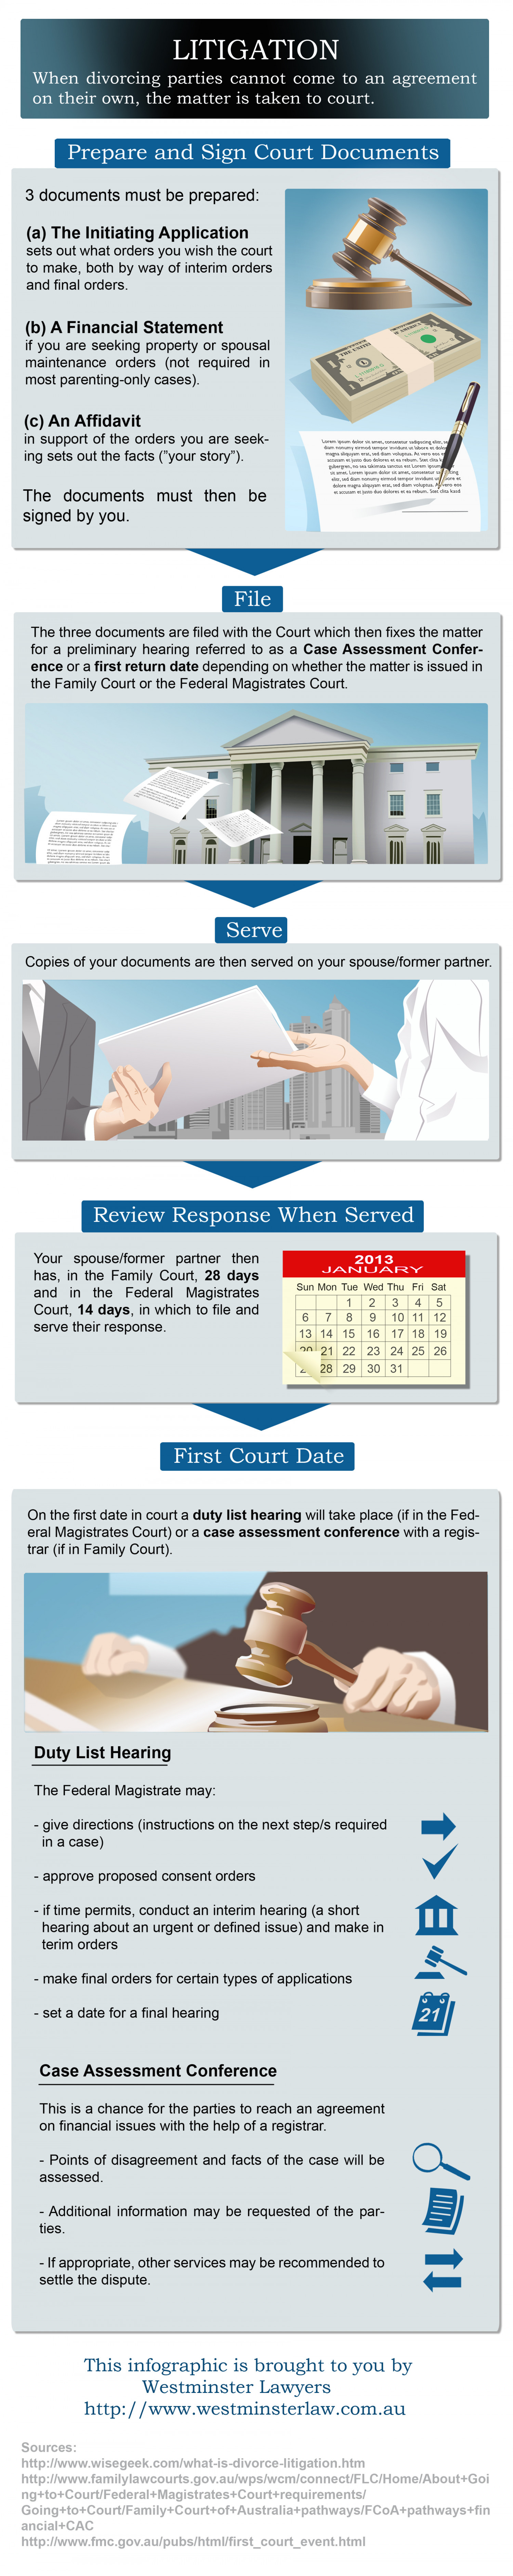 The Litigation Process Infographic